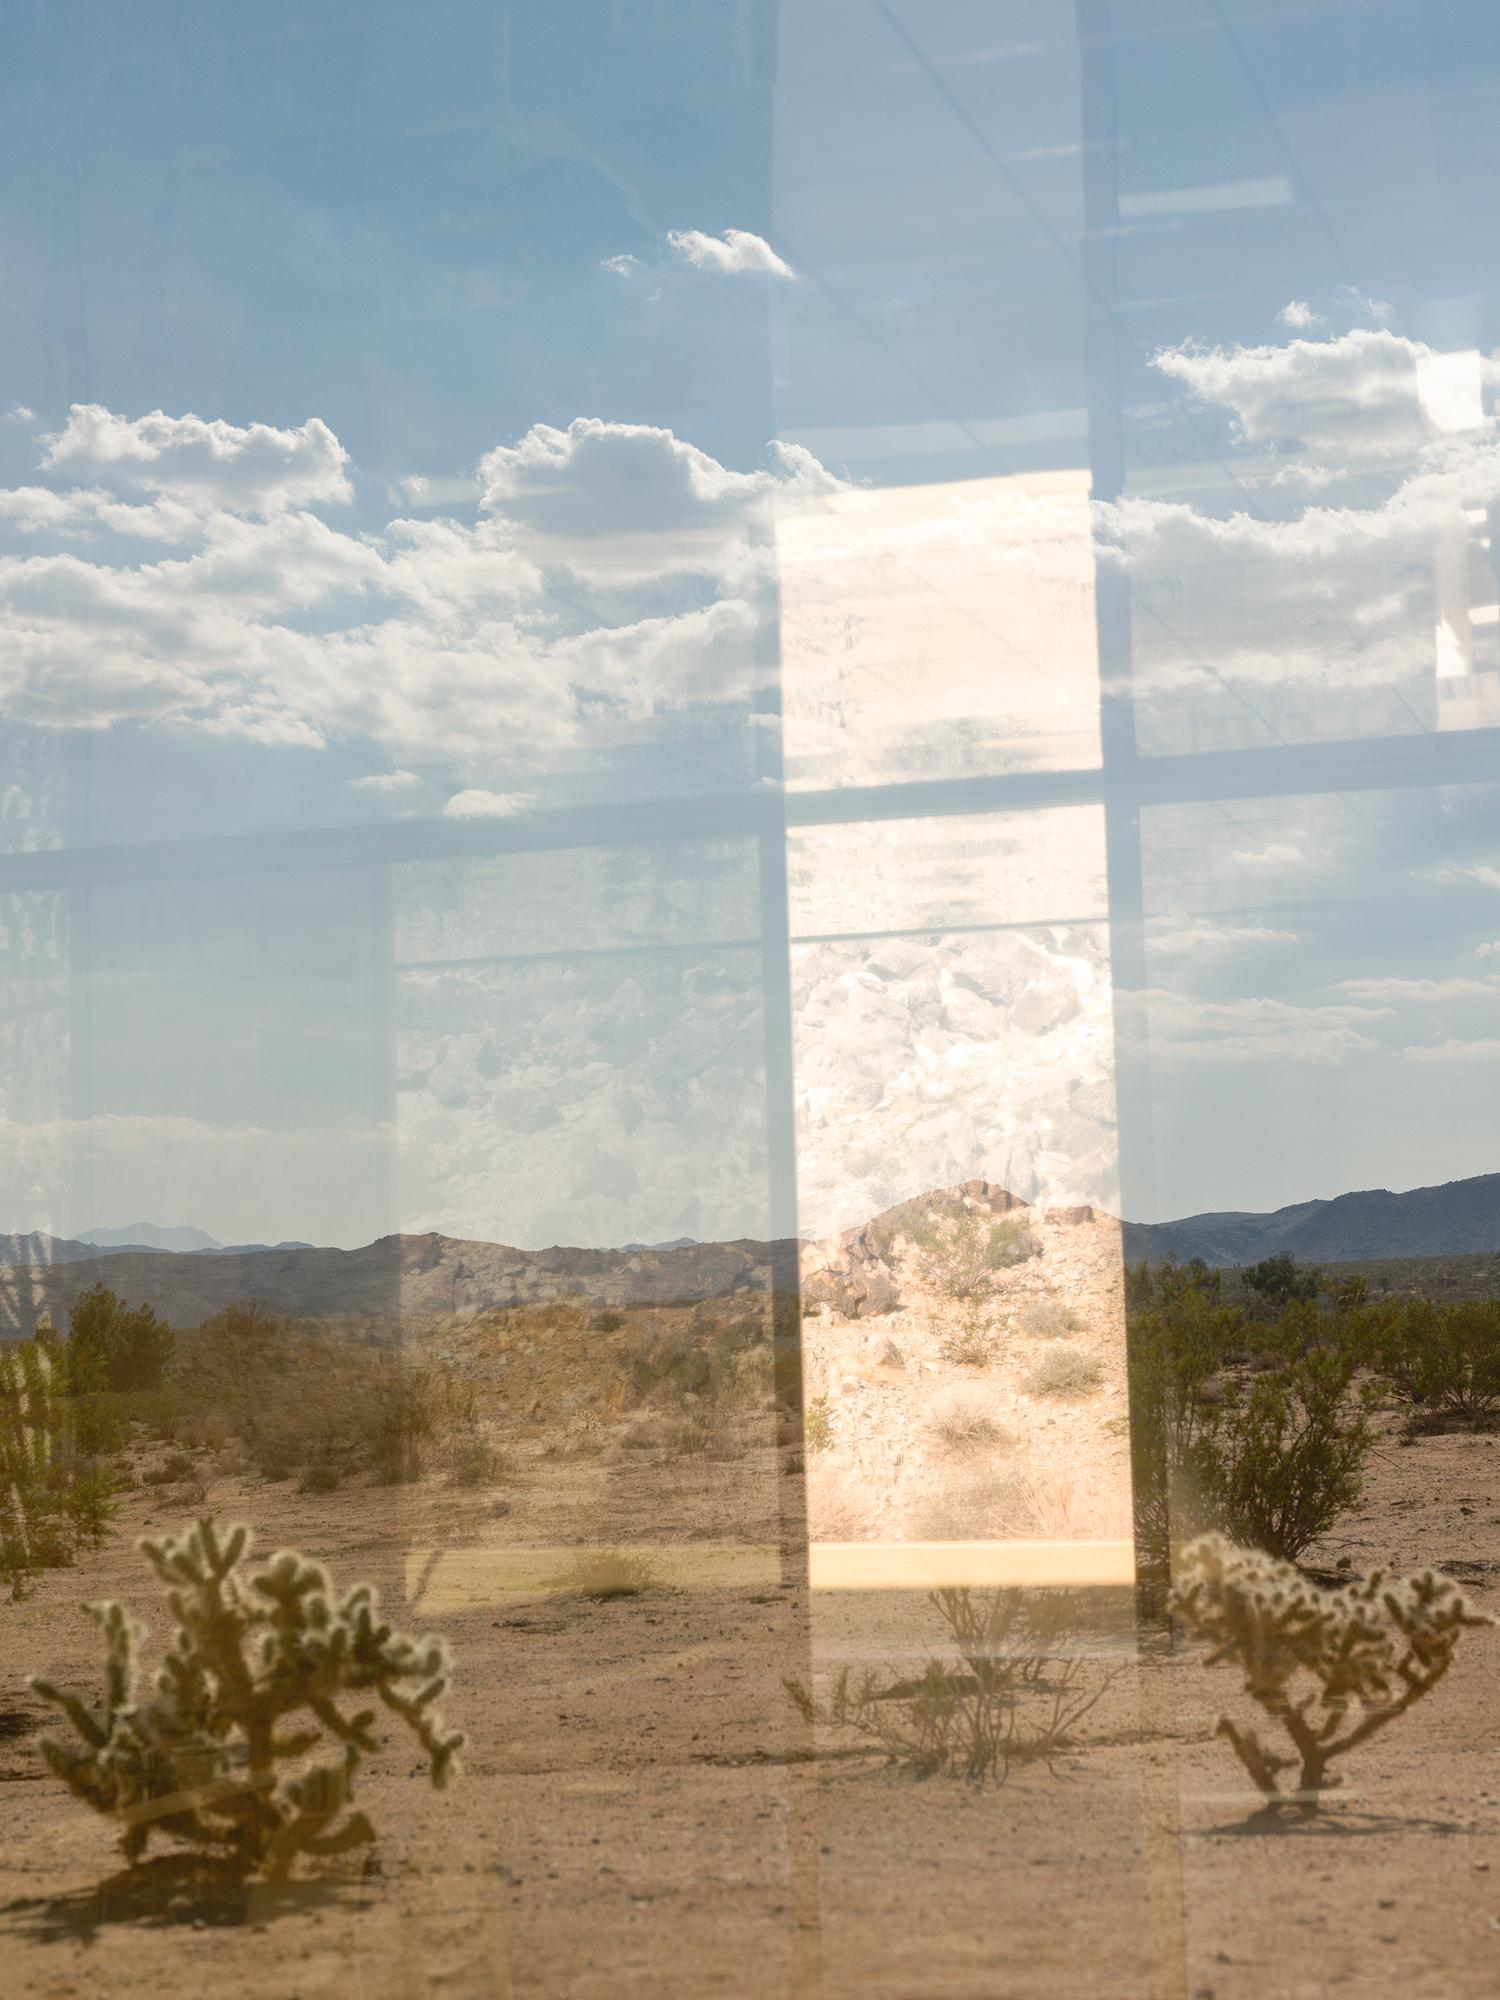 She Disappeared into Complete Silence (AD6301) - large scale abstract photograph